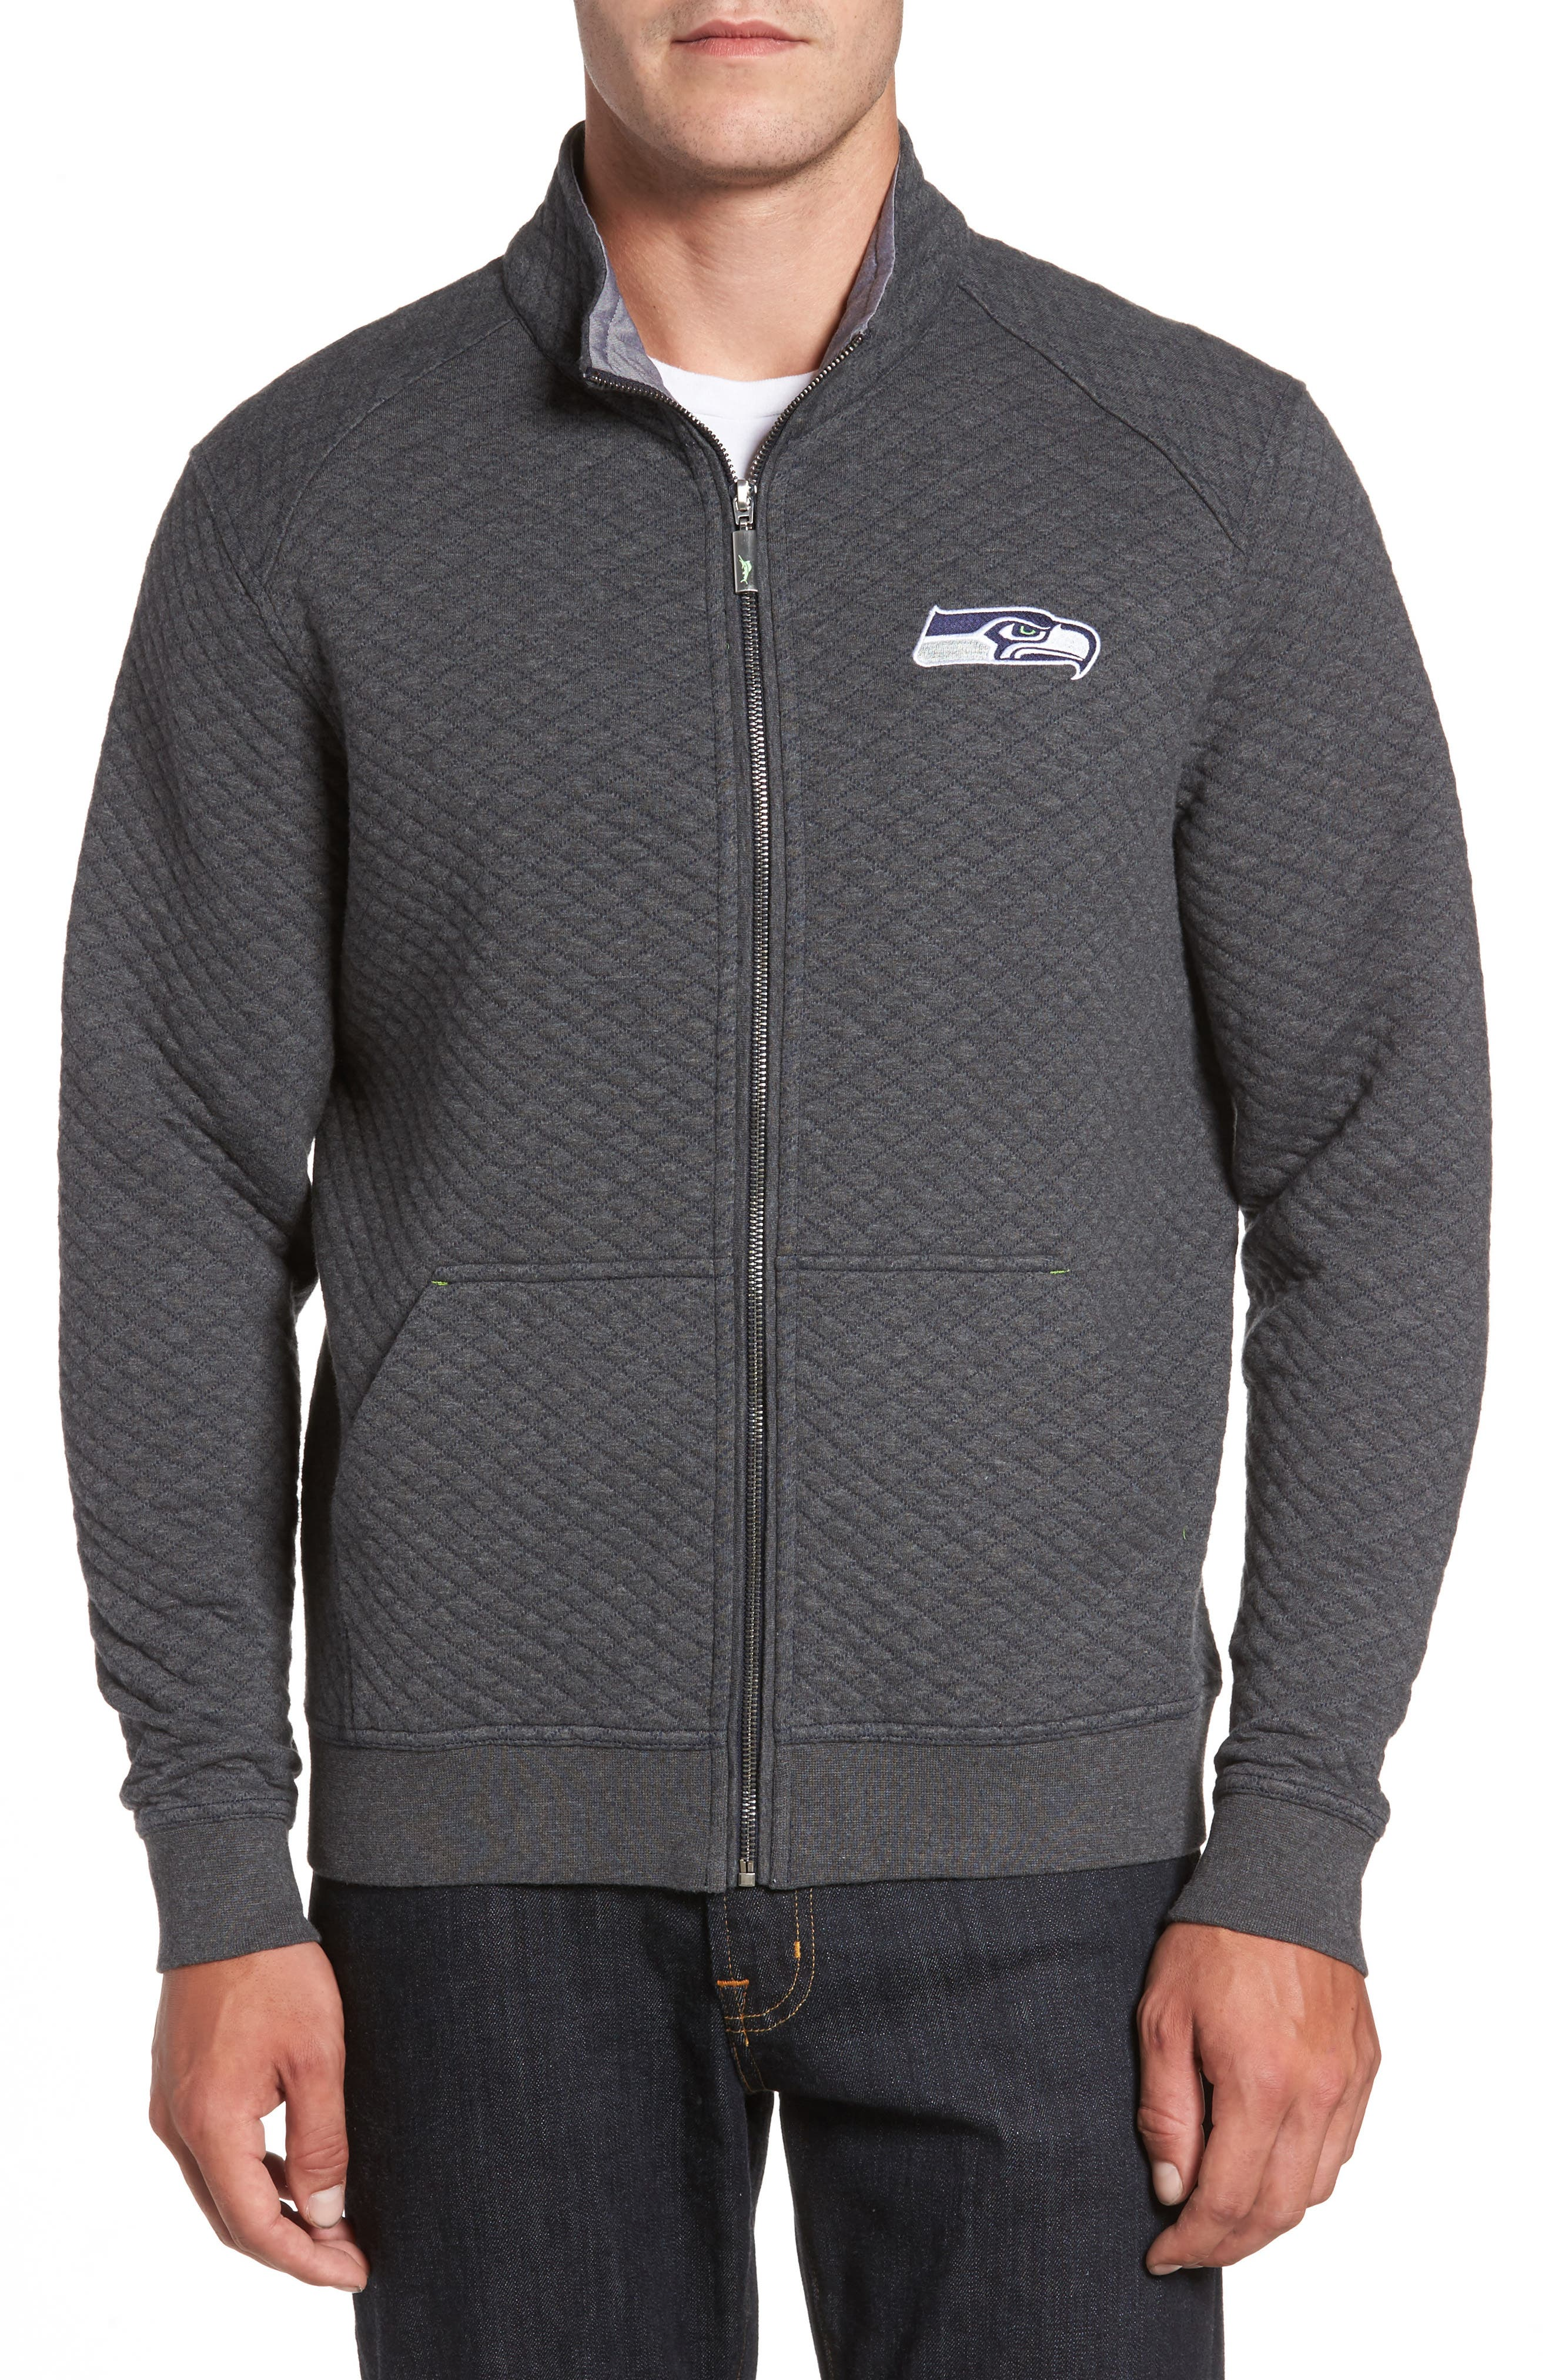 Main Image - Tommy Bahama NFL Quiltessential Full Zip Sweatshirt